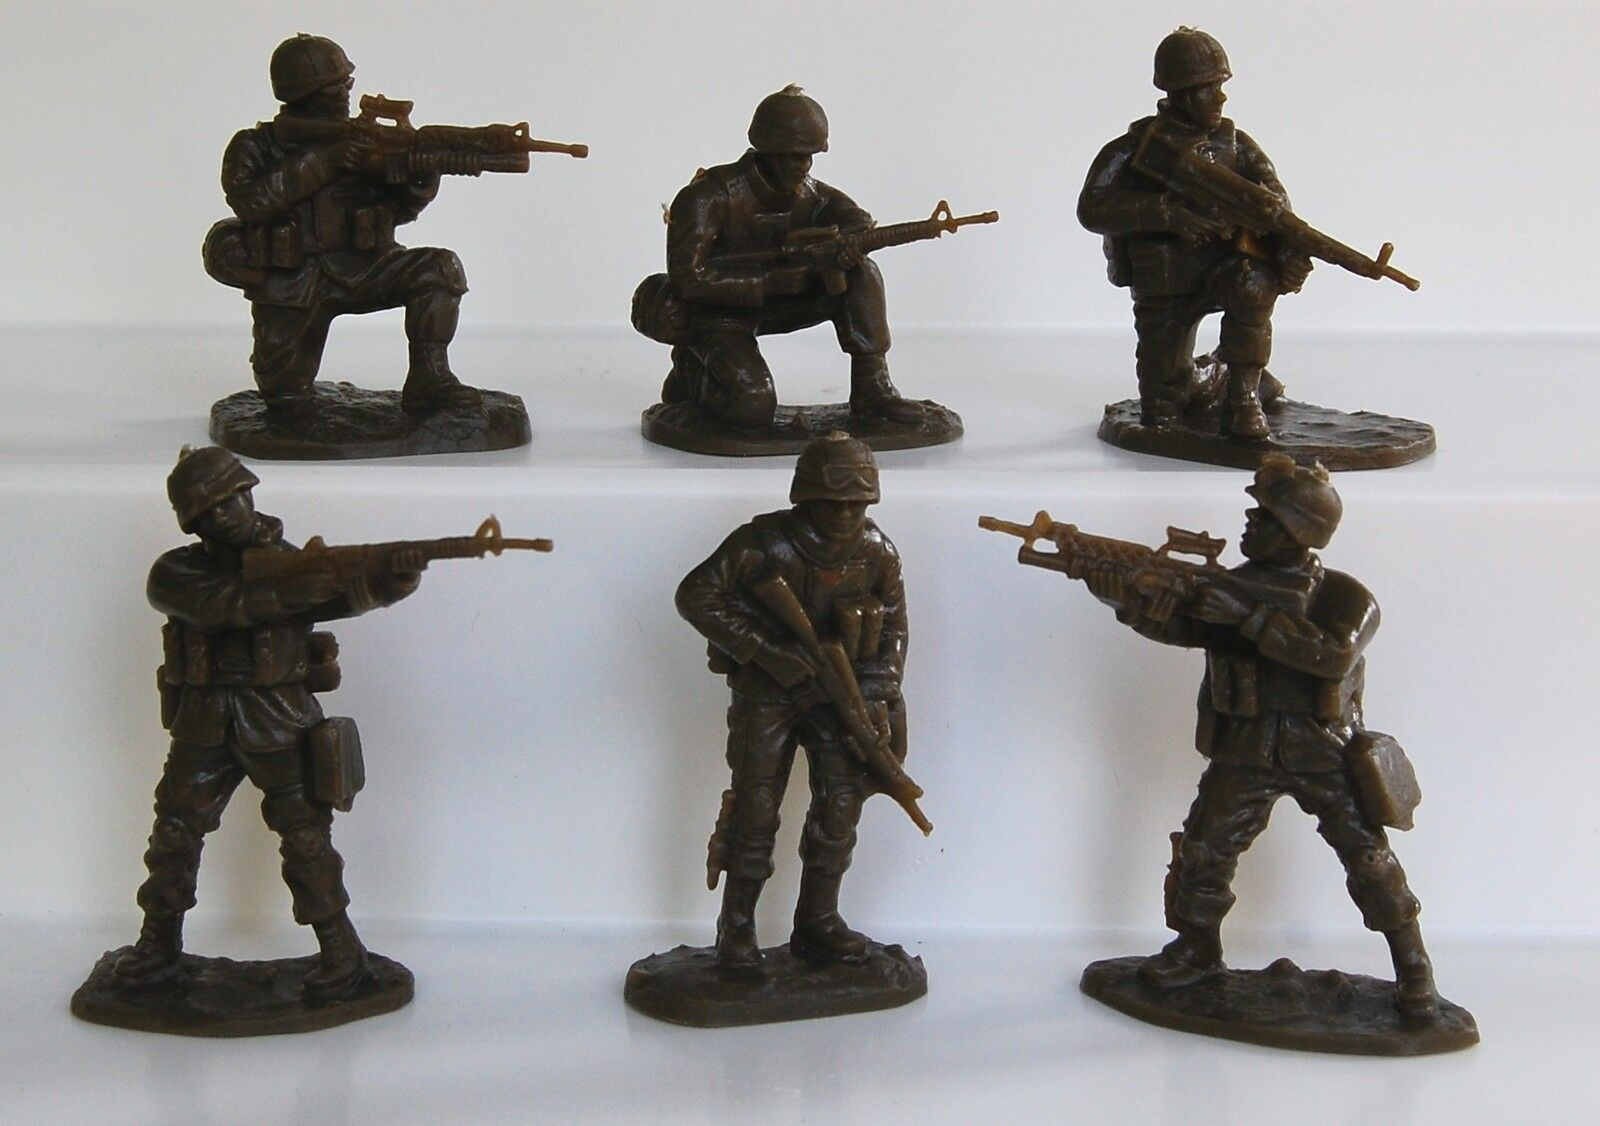 18 American Modern Armies In Plastic Soldiers Army Men 5581 1/32 Scale (54mm)